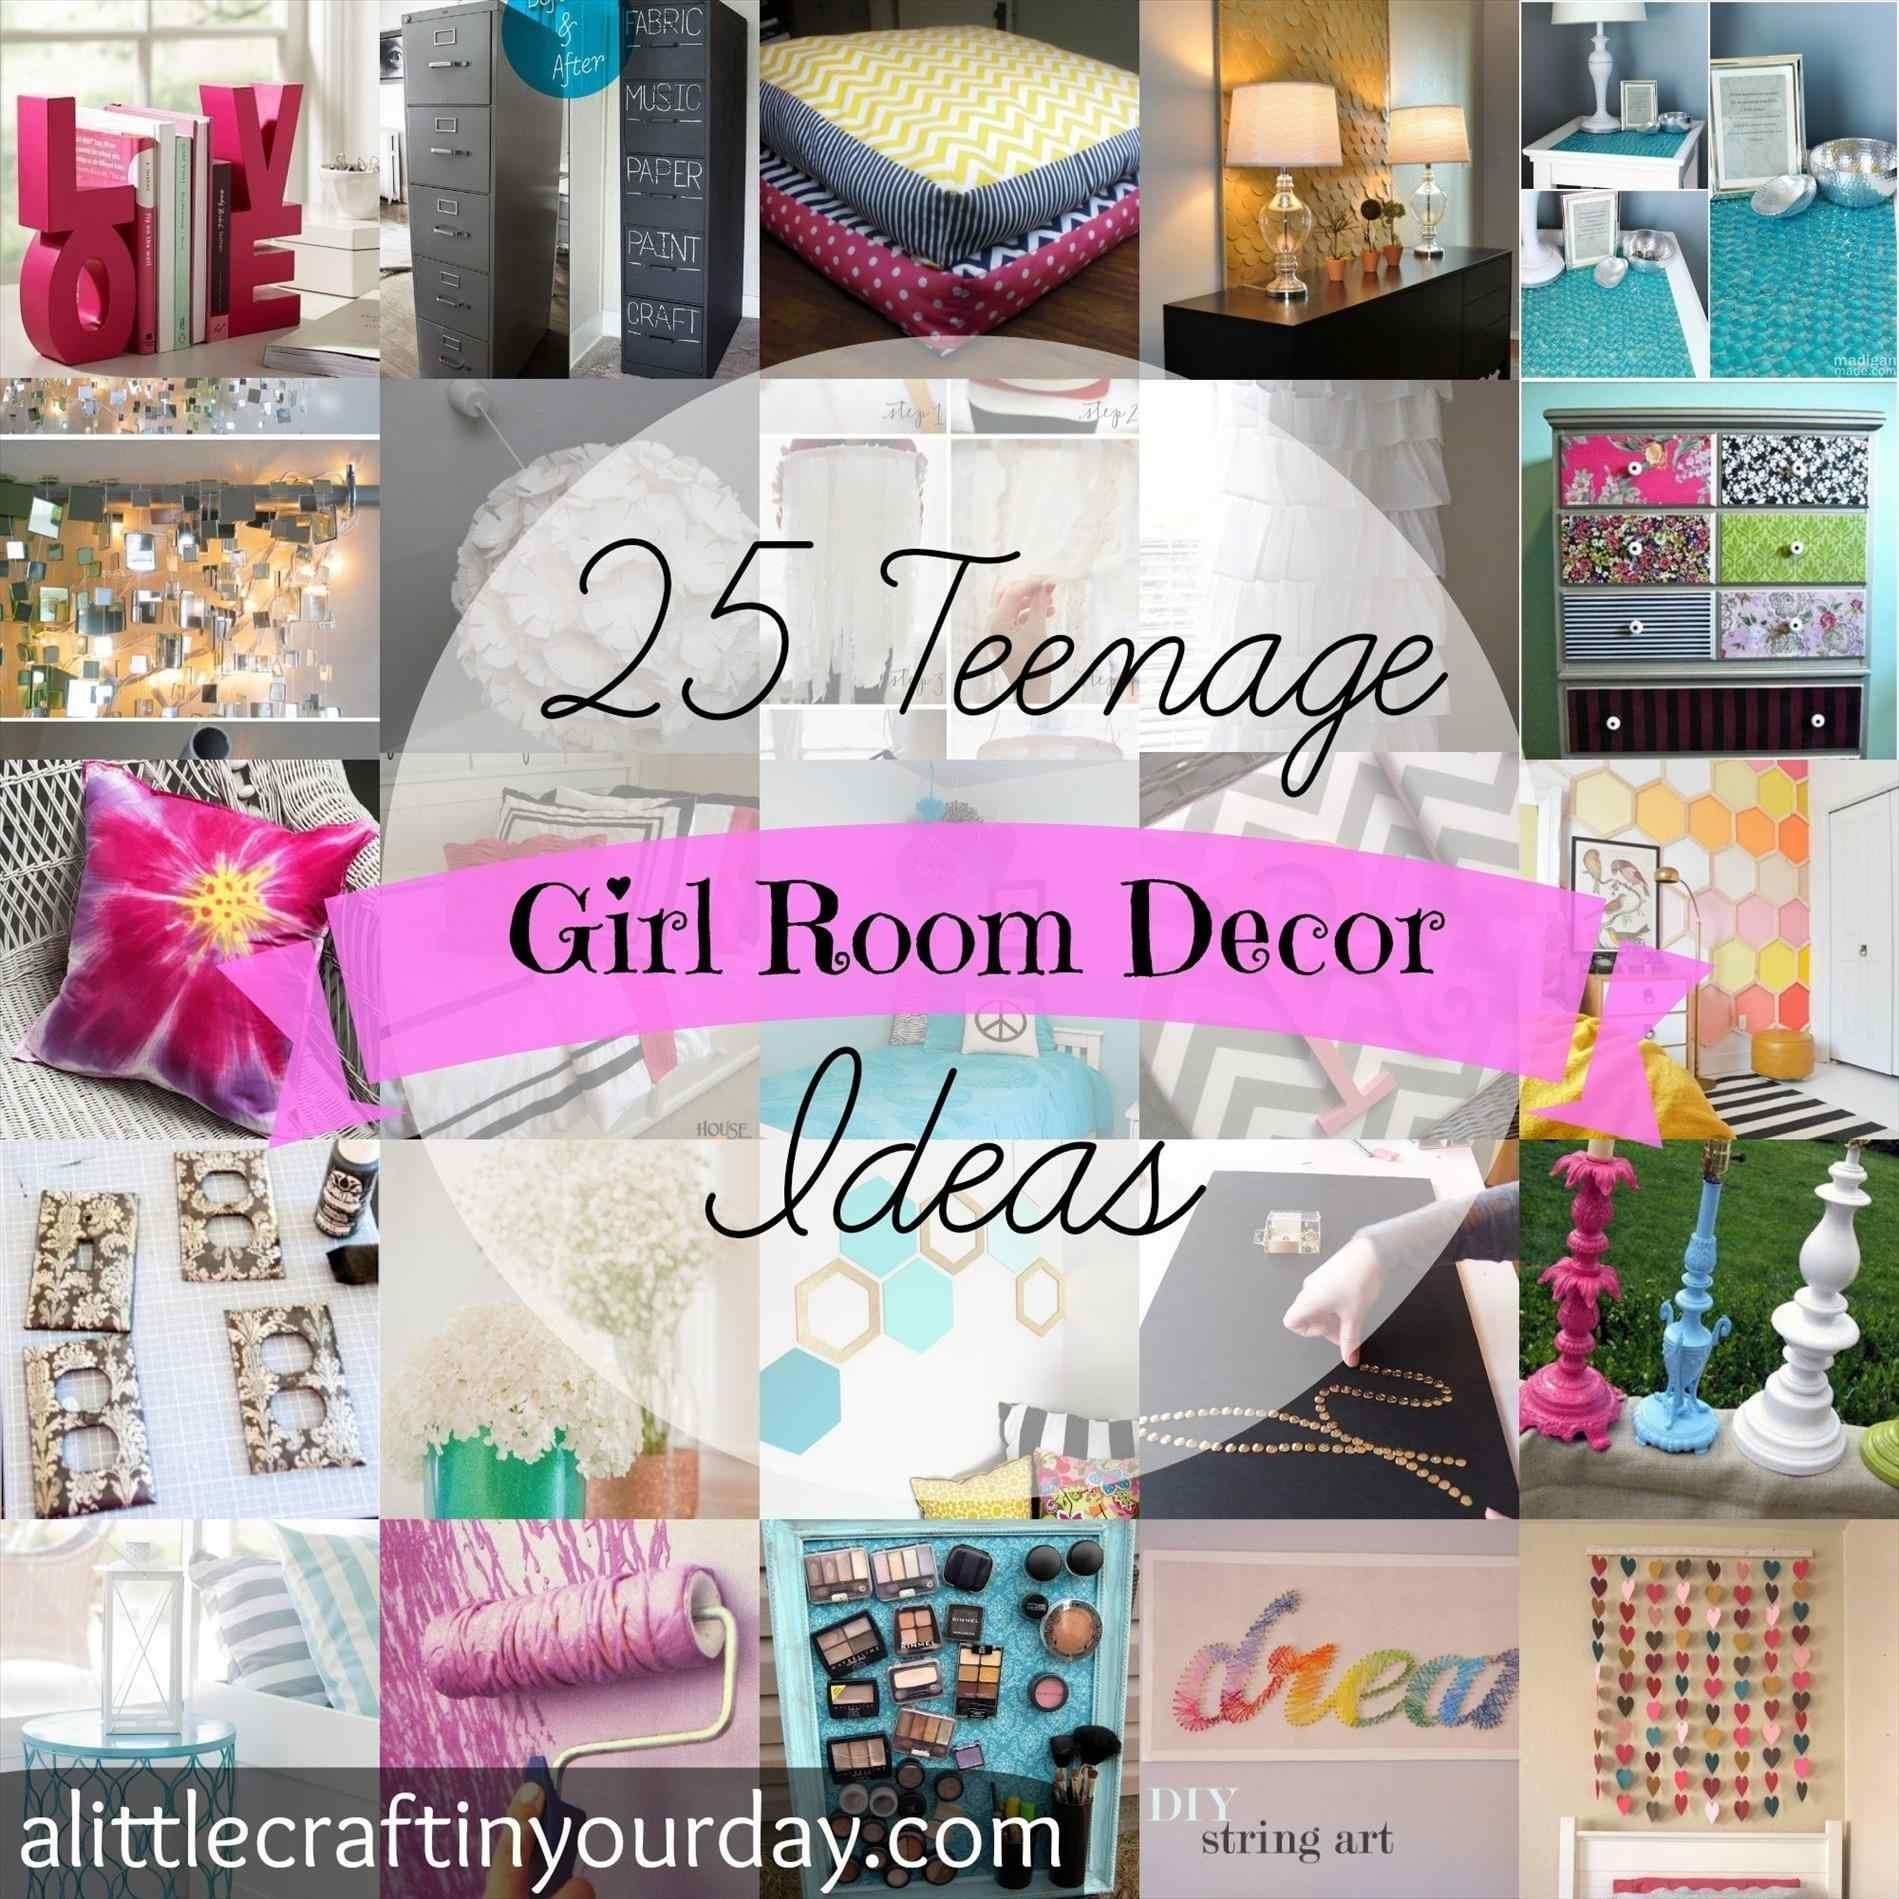 10 Elegant Ideas To Spice Up The Bedroom For Him ideas to spice up the bedroom for him 2018 athelred 2021